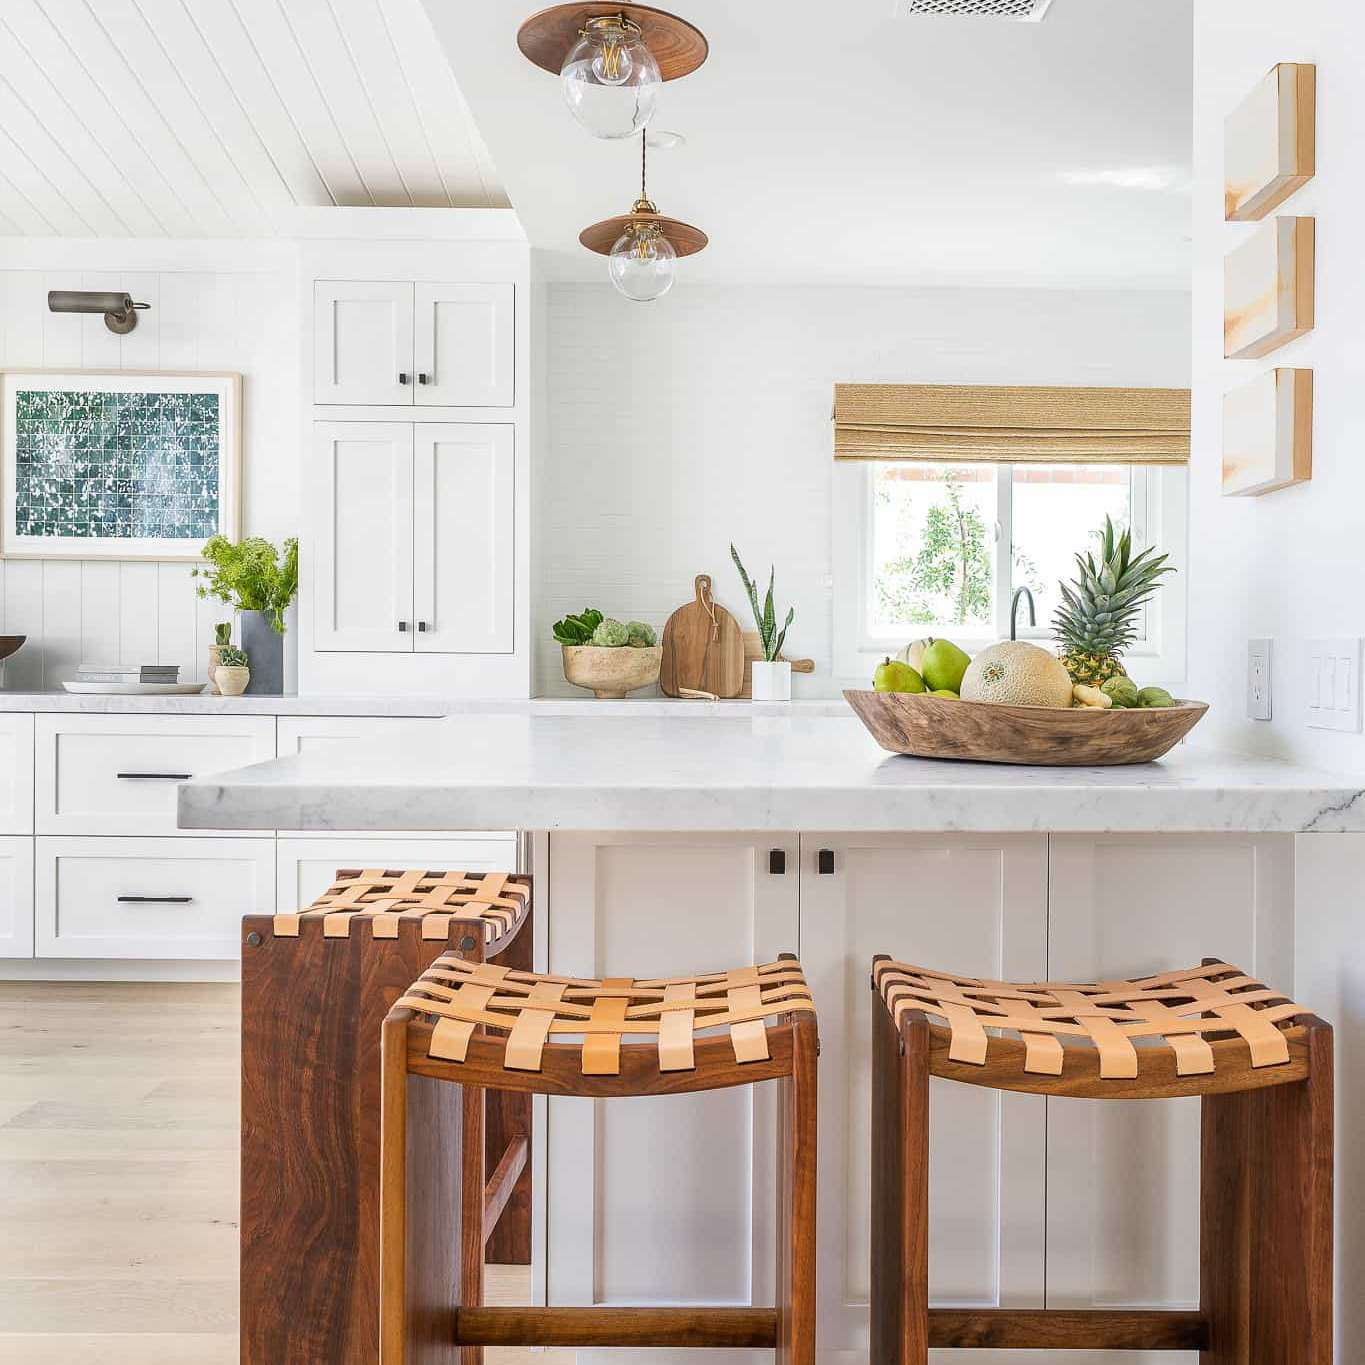 An open-concept kitchen with a wraparound bar